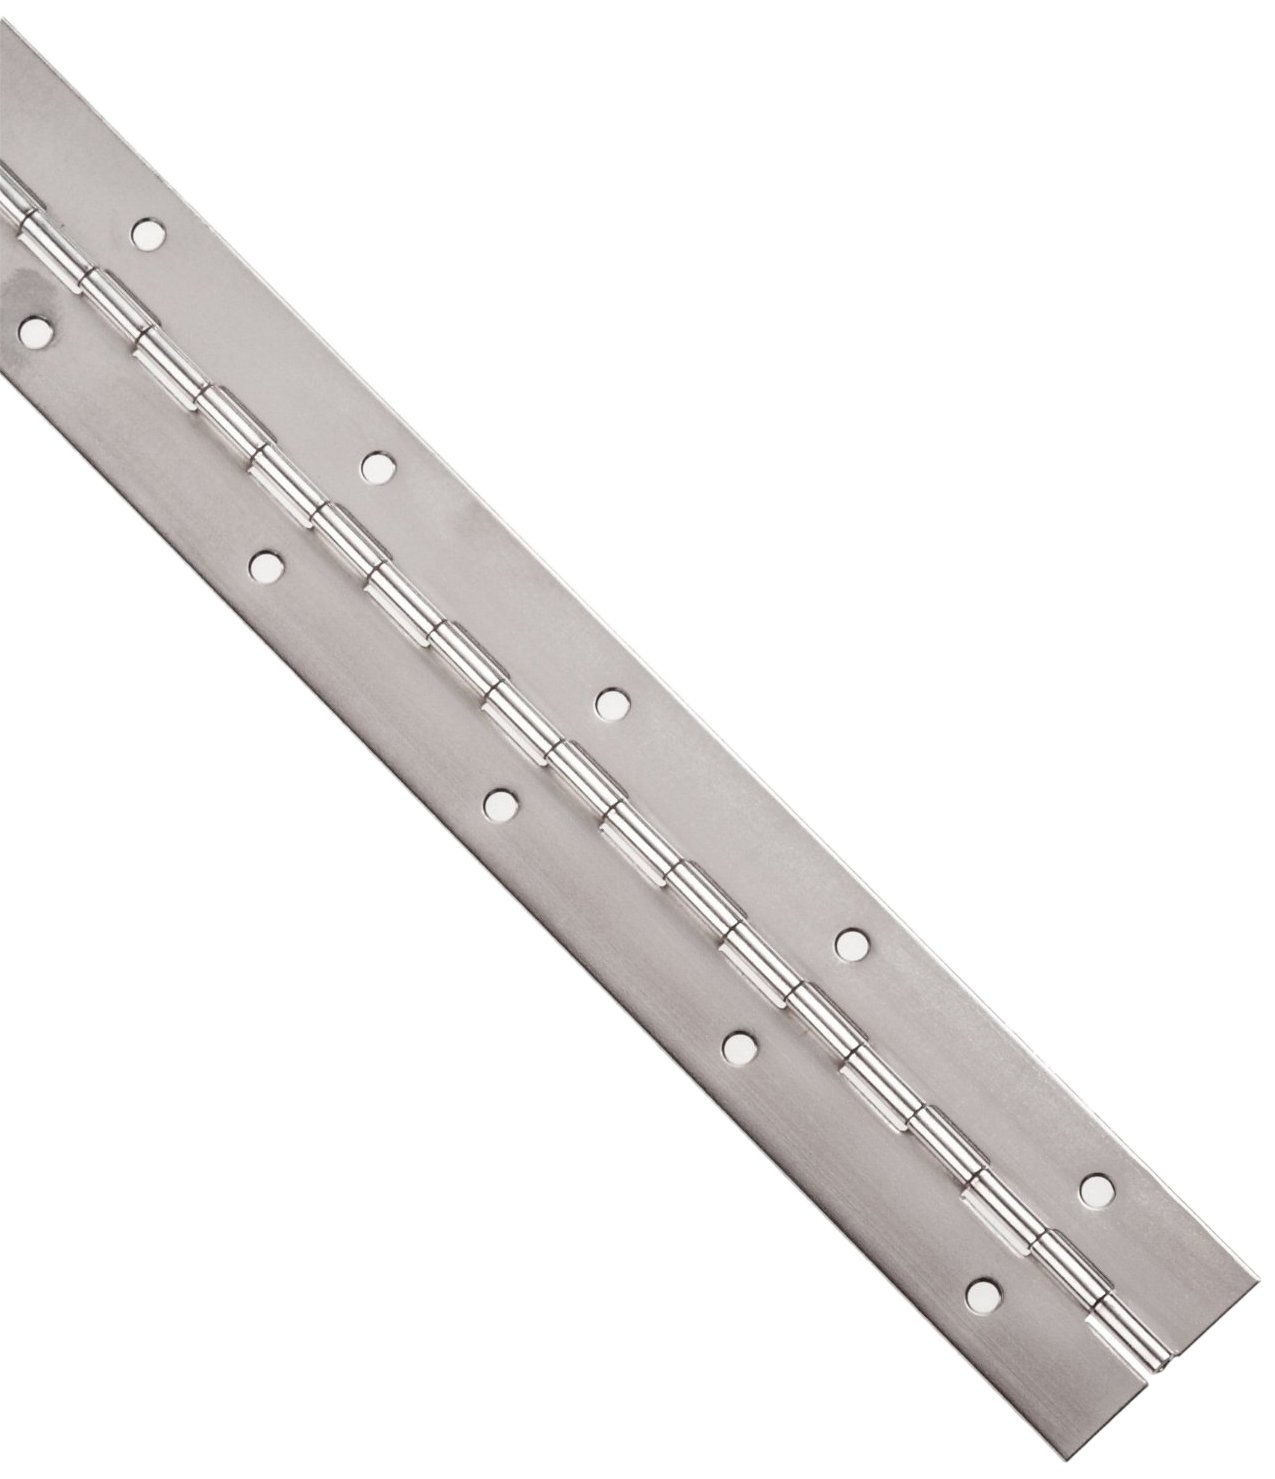 Stainless Steel 304 Continuous Hinge with Holes, Polished Finish, 0.06'' Leaf Thickness, 2'' Open Width, 1/8'' Pin Diameter, 1/2'' Knuckle Length, 3' Long (Pack of 1)